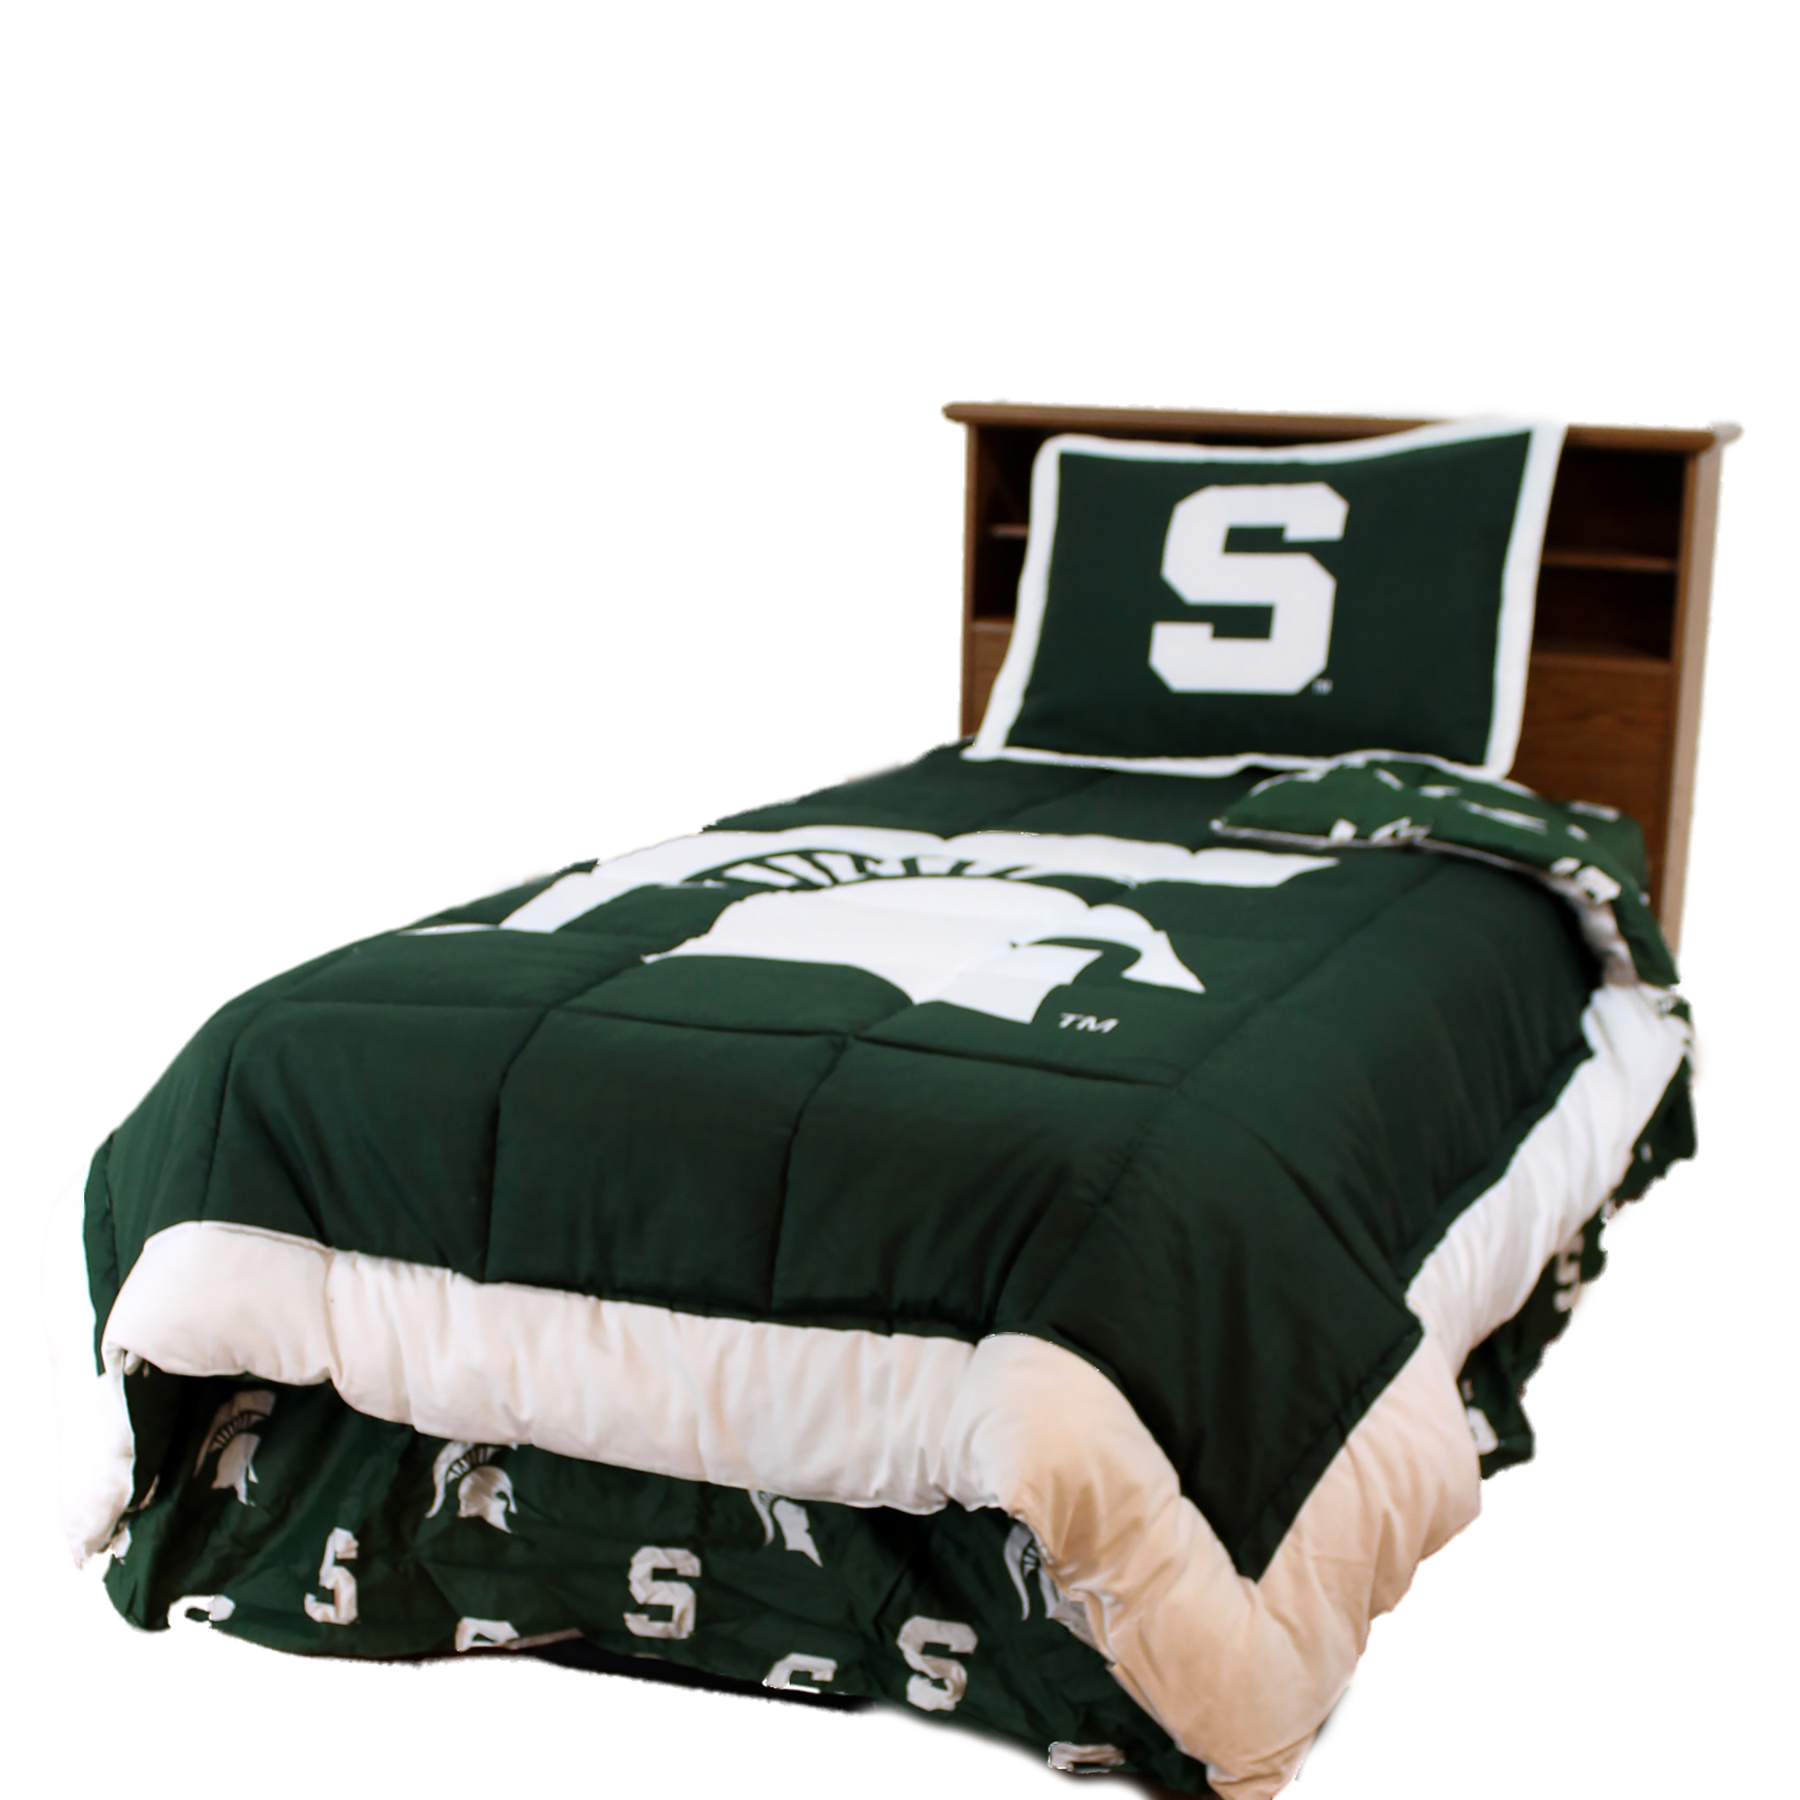 Michigan State Spartans 2 Pc Comforter Set, 1 Comforter, 1 Sham, Twin